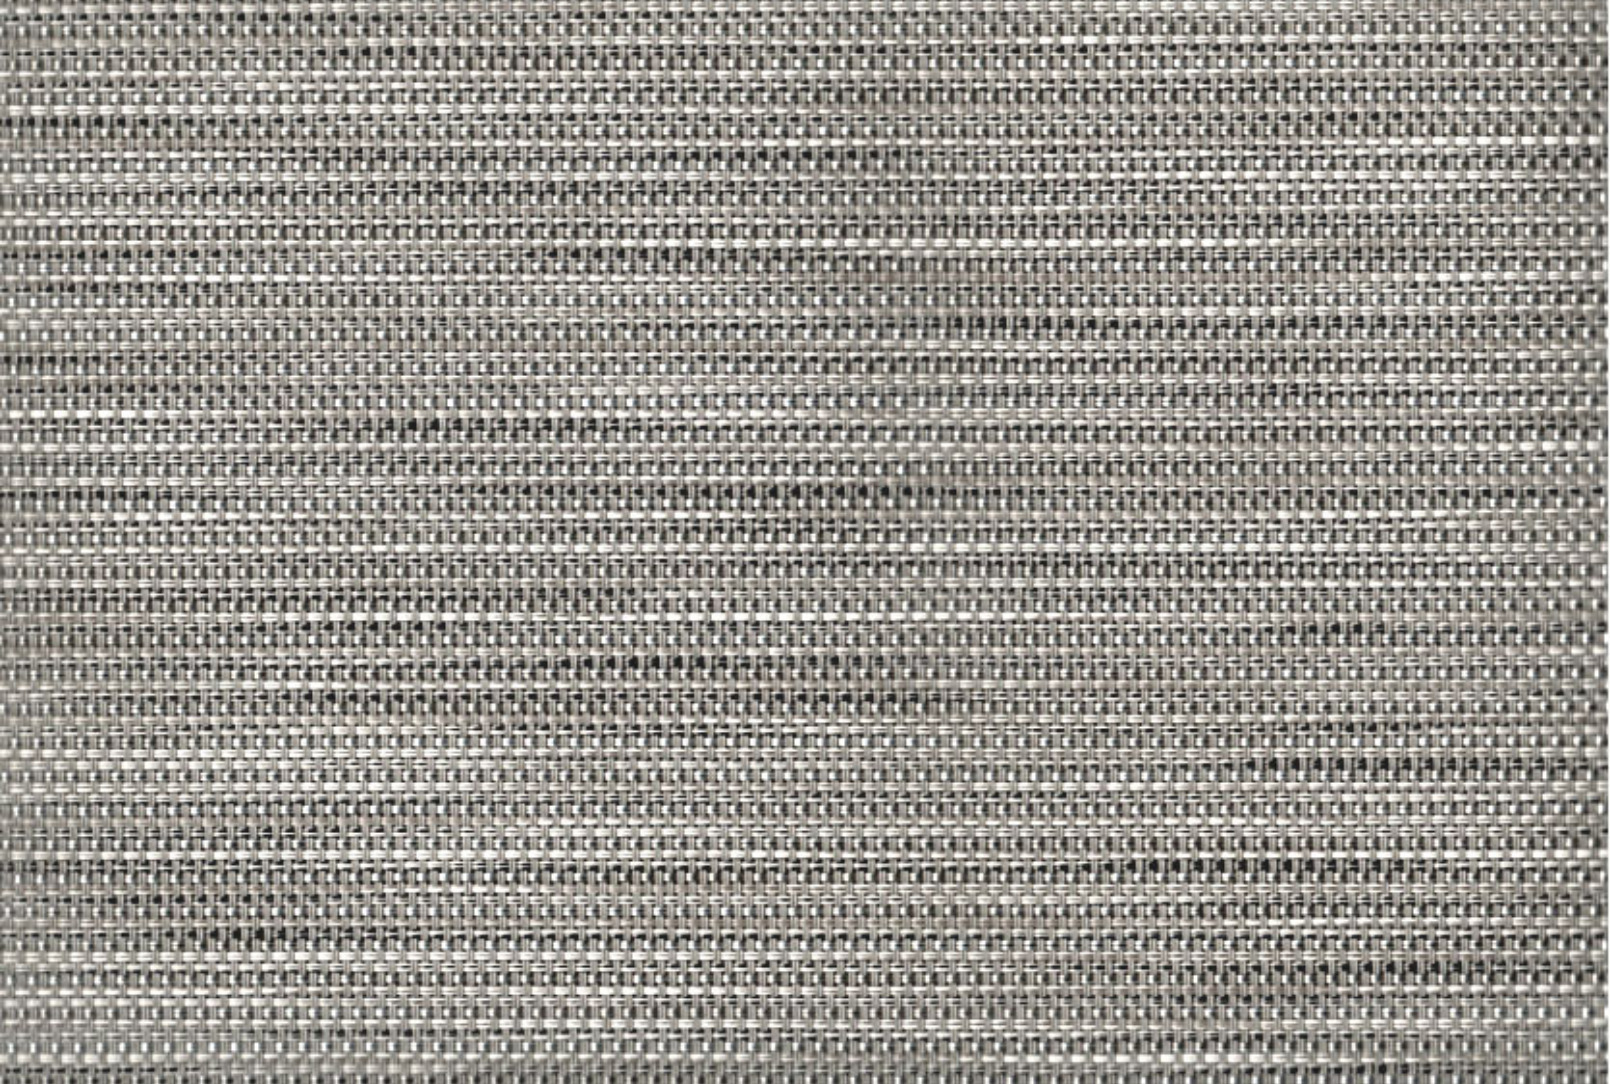 screenshot-2018-08-16-digital-fabric-samples-outdoor-patio-furniture-sling-fabric-2-.jpg